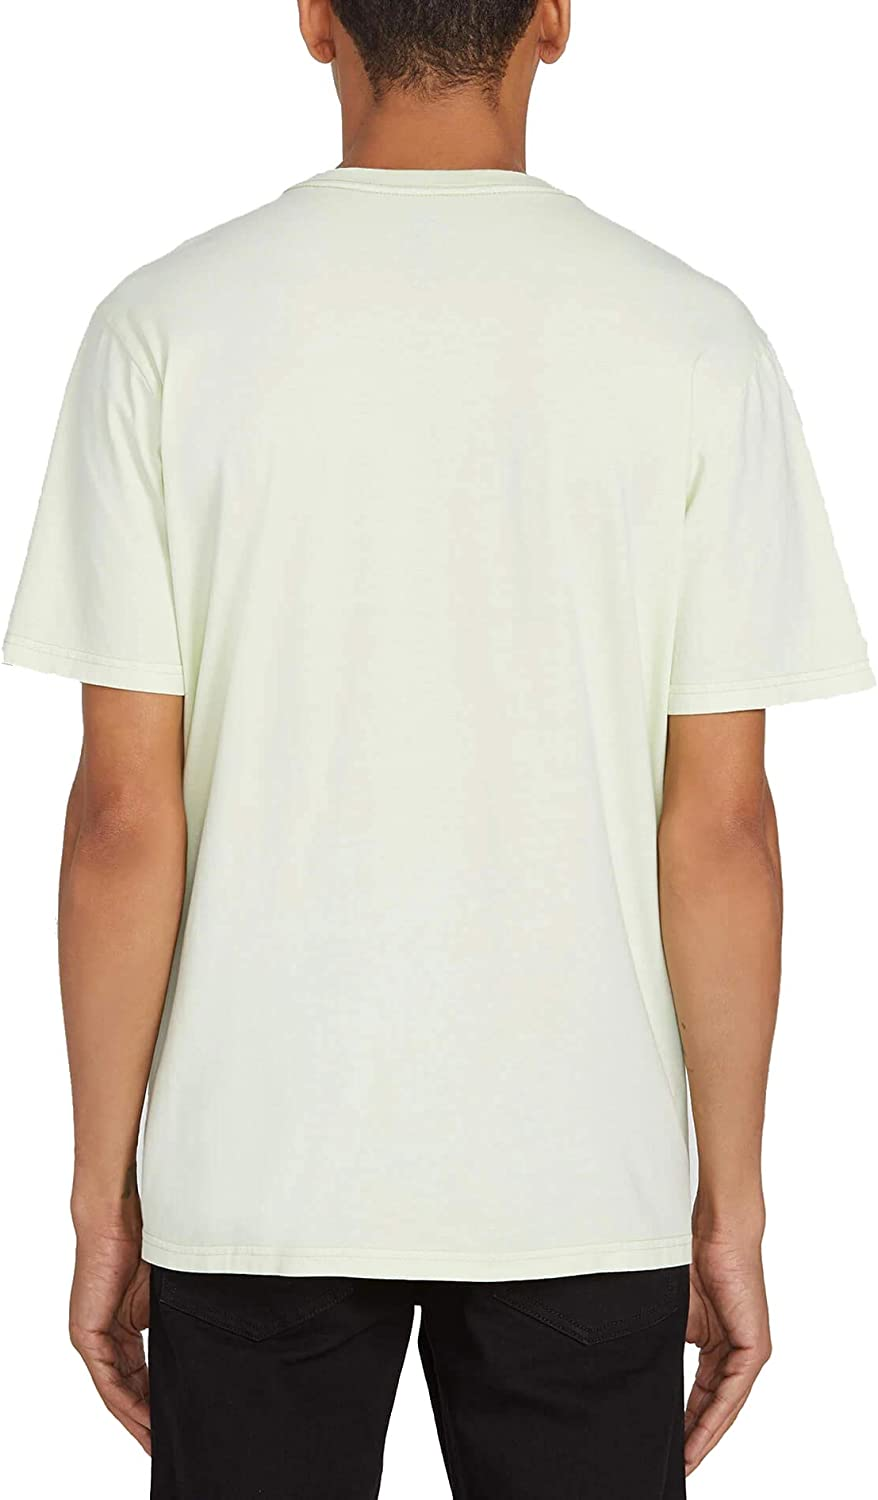 Volcom Mens Solid Stone Embroidered Short Sleeve Tee